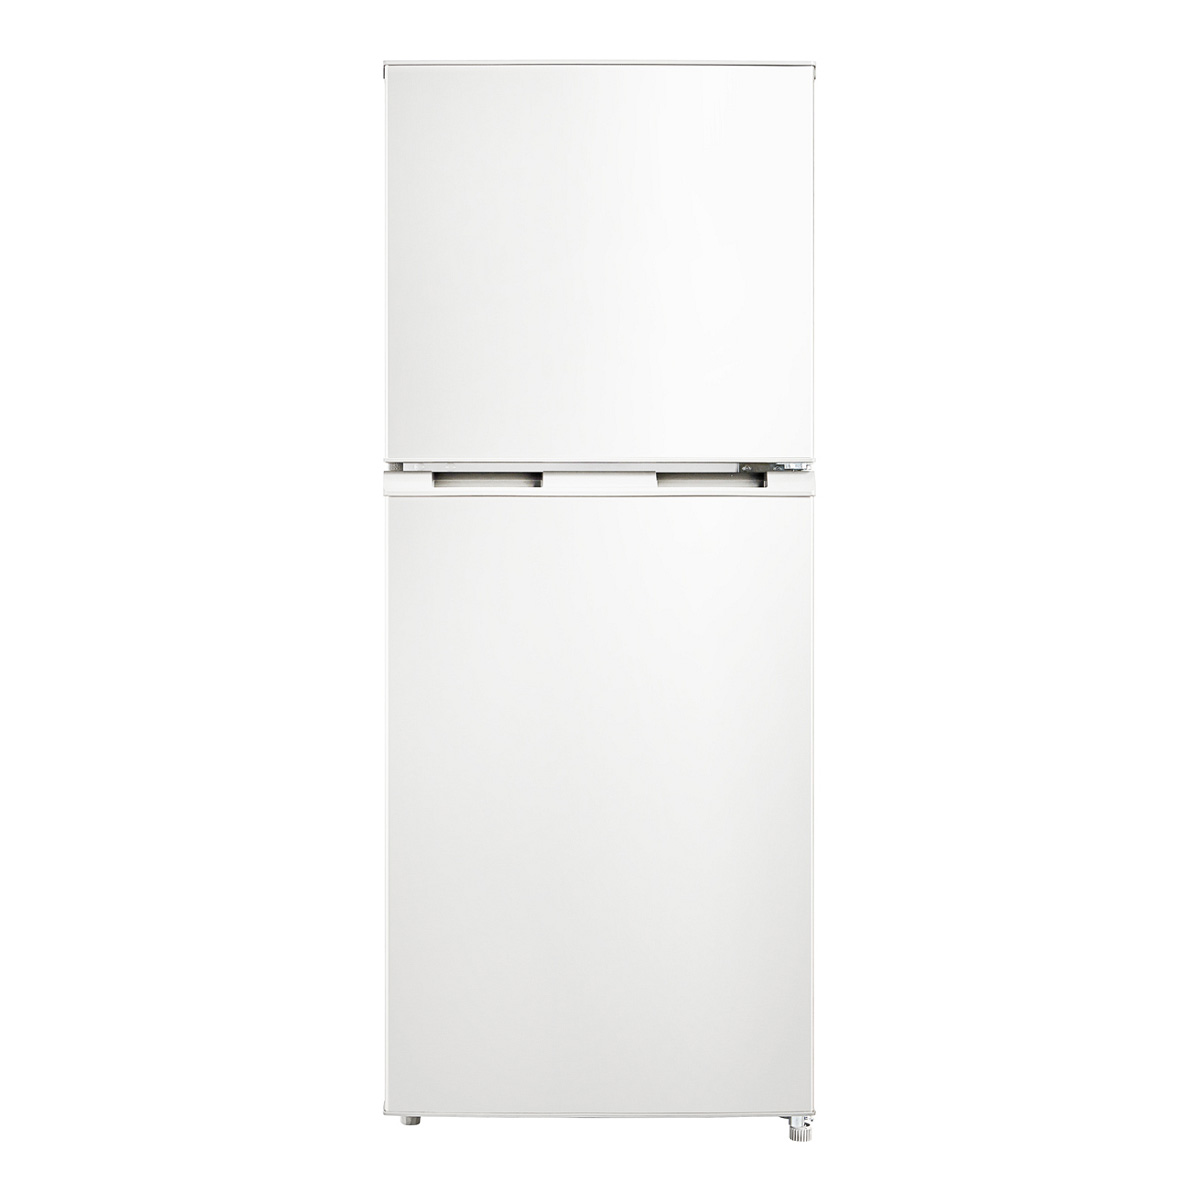 Midea MTM207W 207L Top Mount Fridge